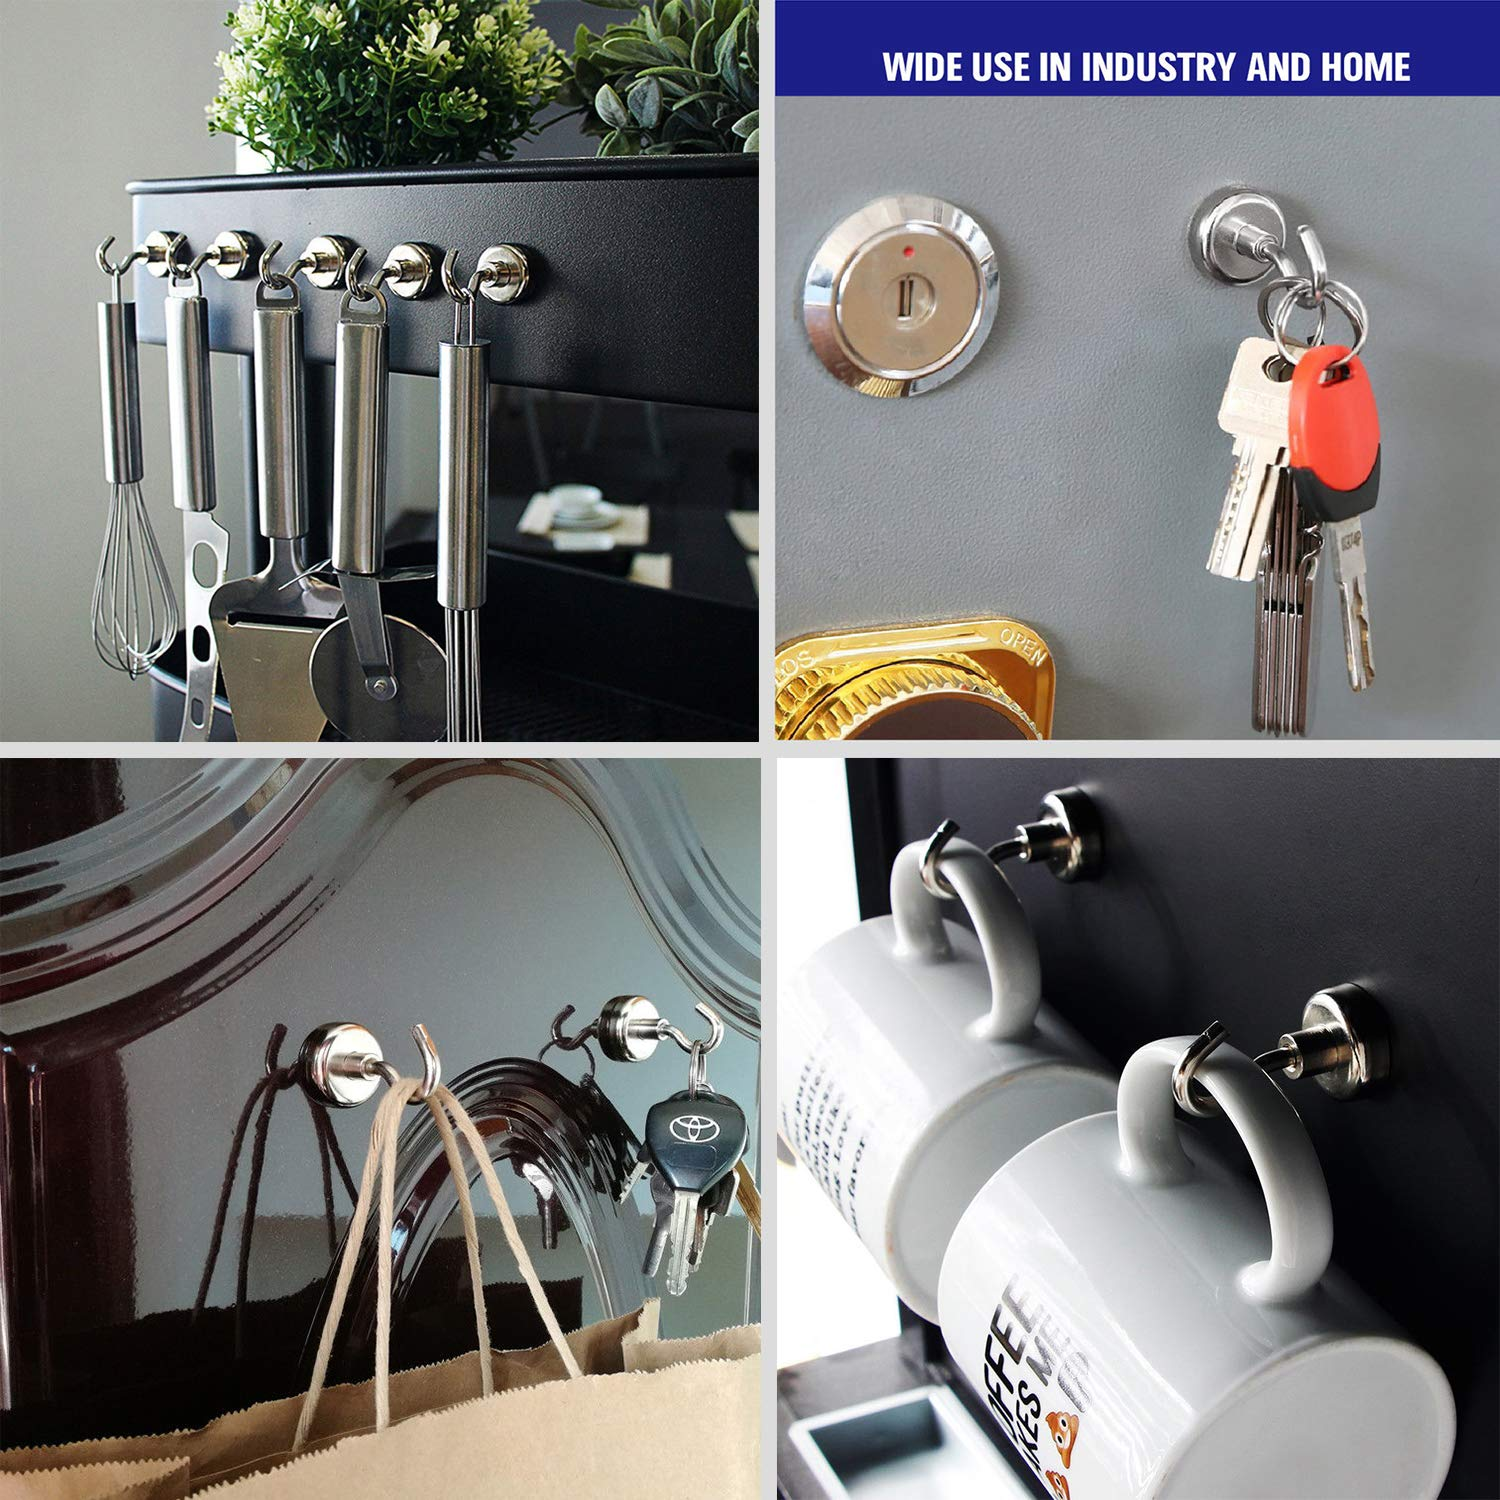 Pack of 28 MIKEDE Magnetic Hooks Powerful 22LBS Heavy Duty Neodymium Magnets Indoor Outdoor Hook Magnets Hanging Super Strong Magnet Hooks